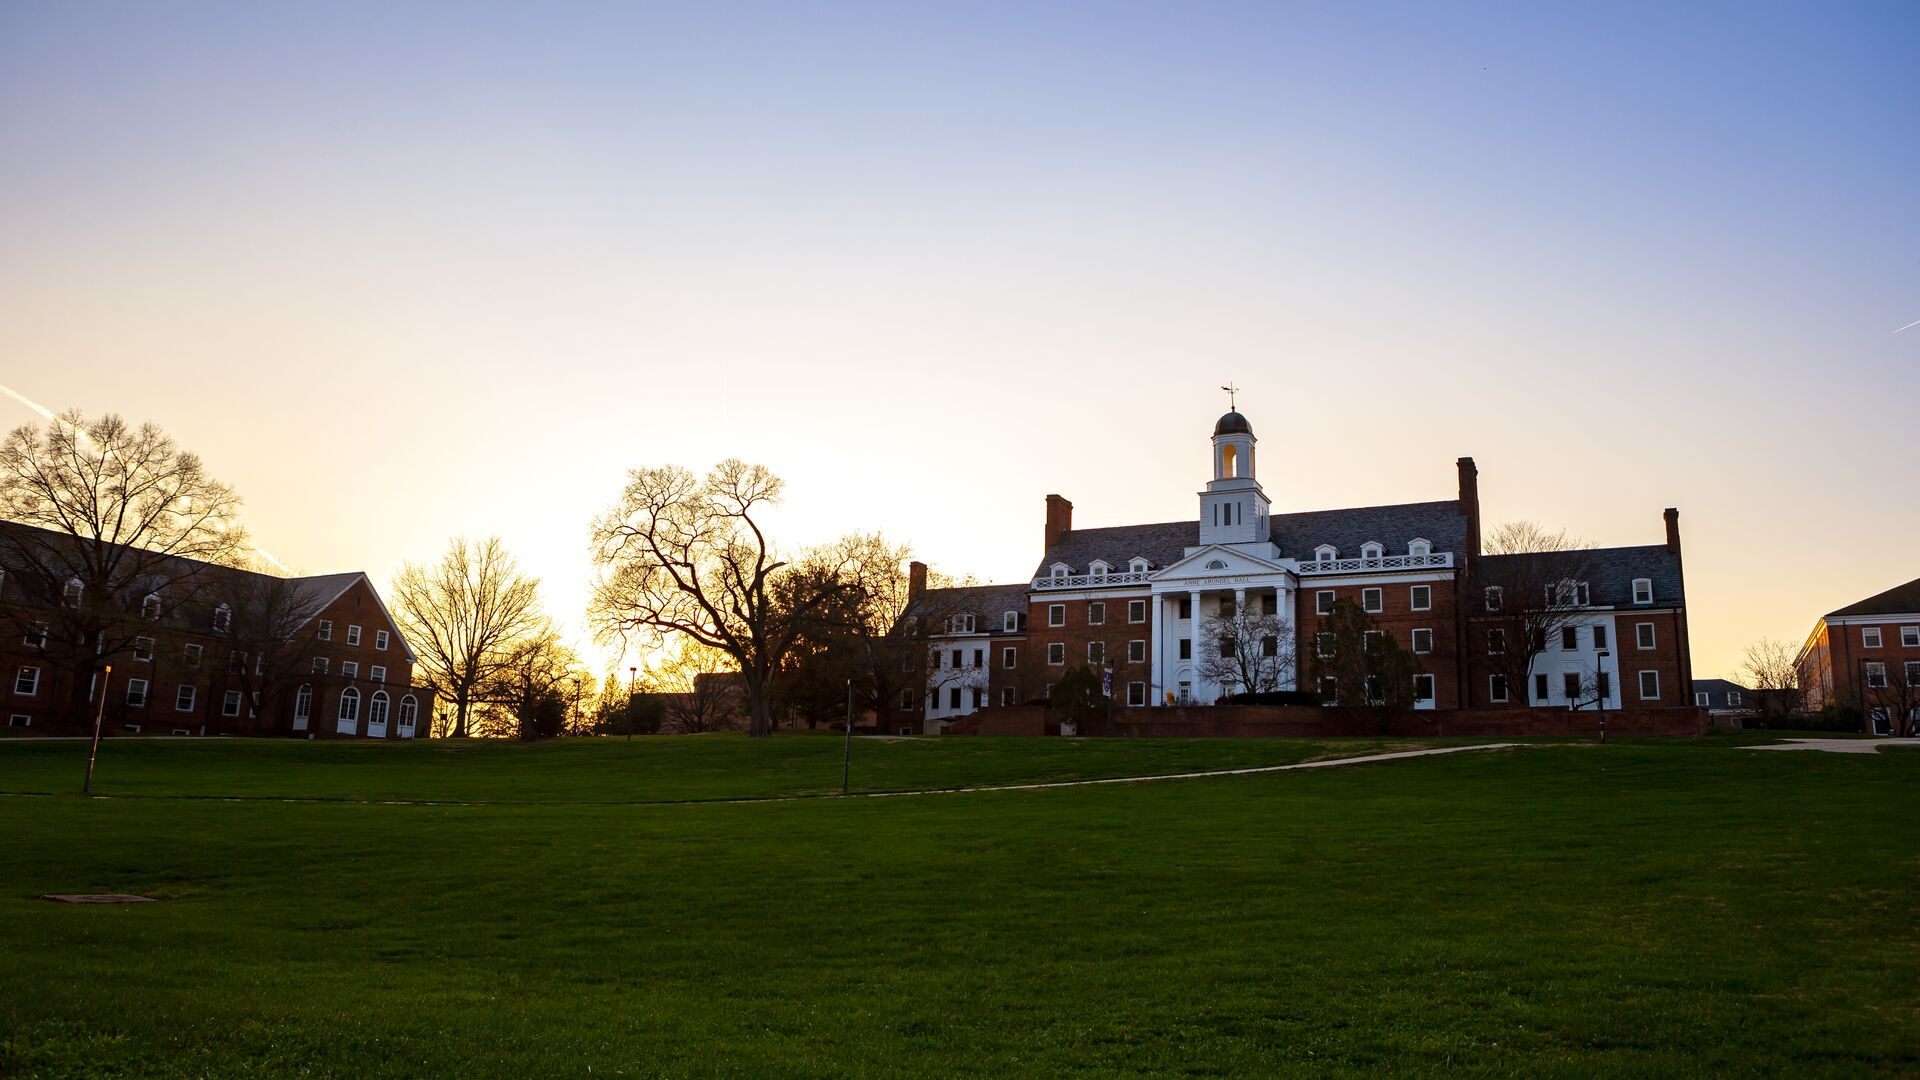 View of Anne Arundel Hall and Queen Anne's Hall at dusk during the winter months.